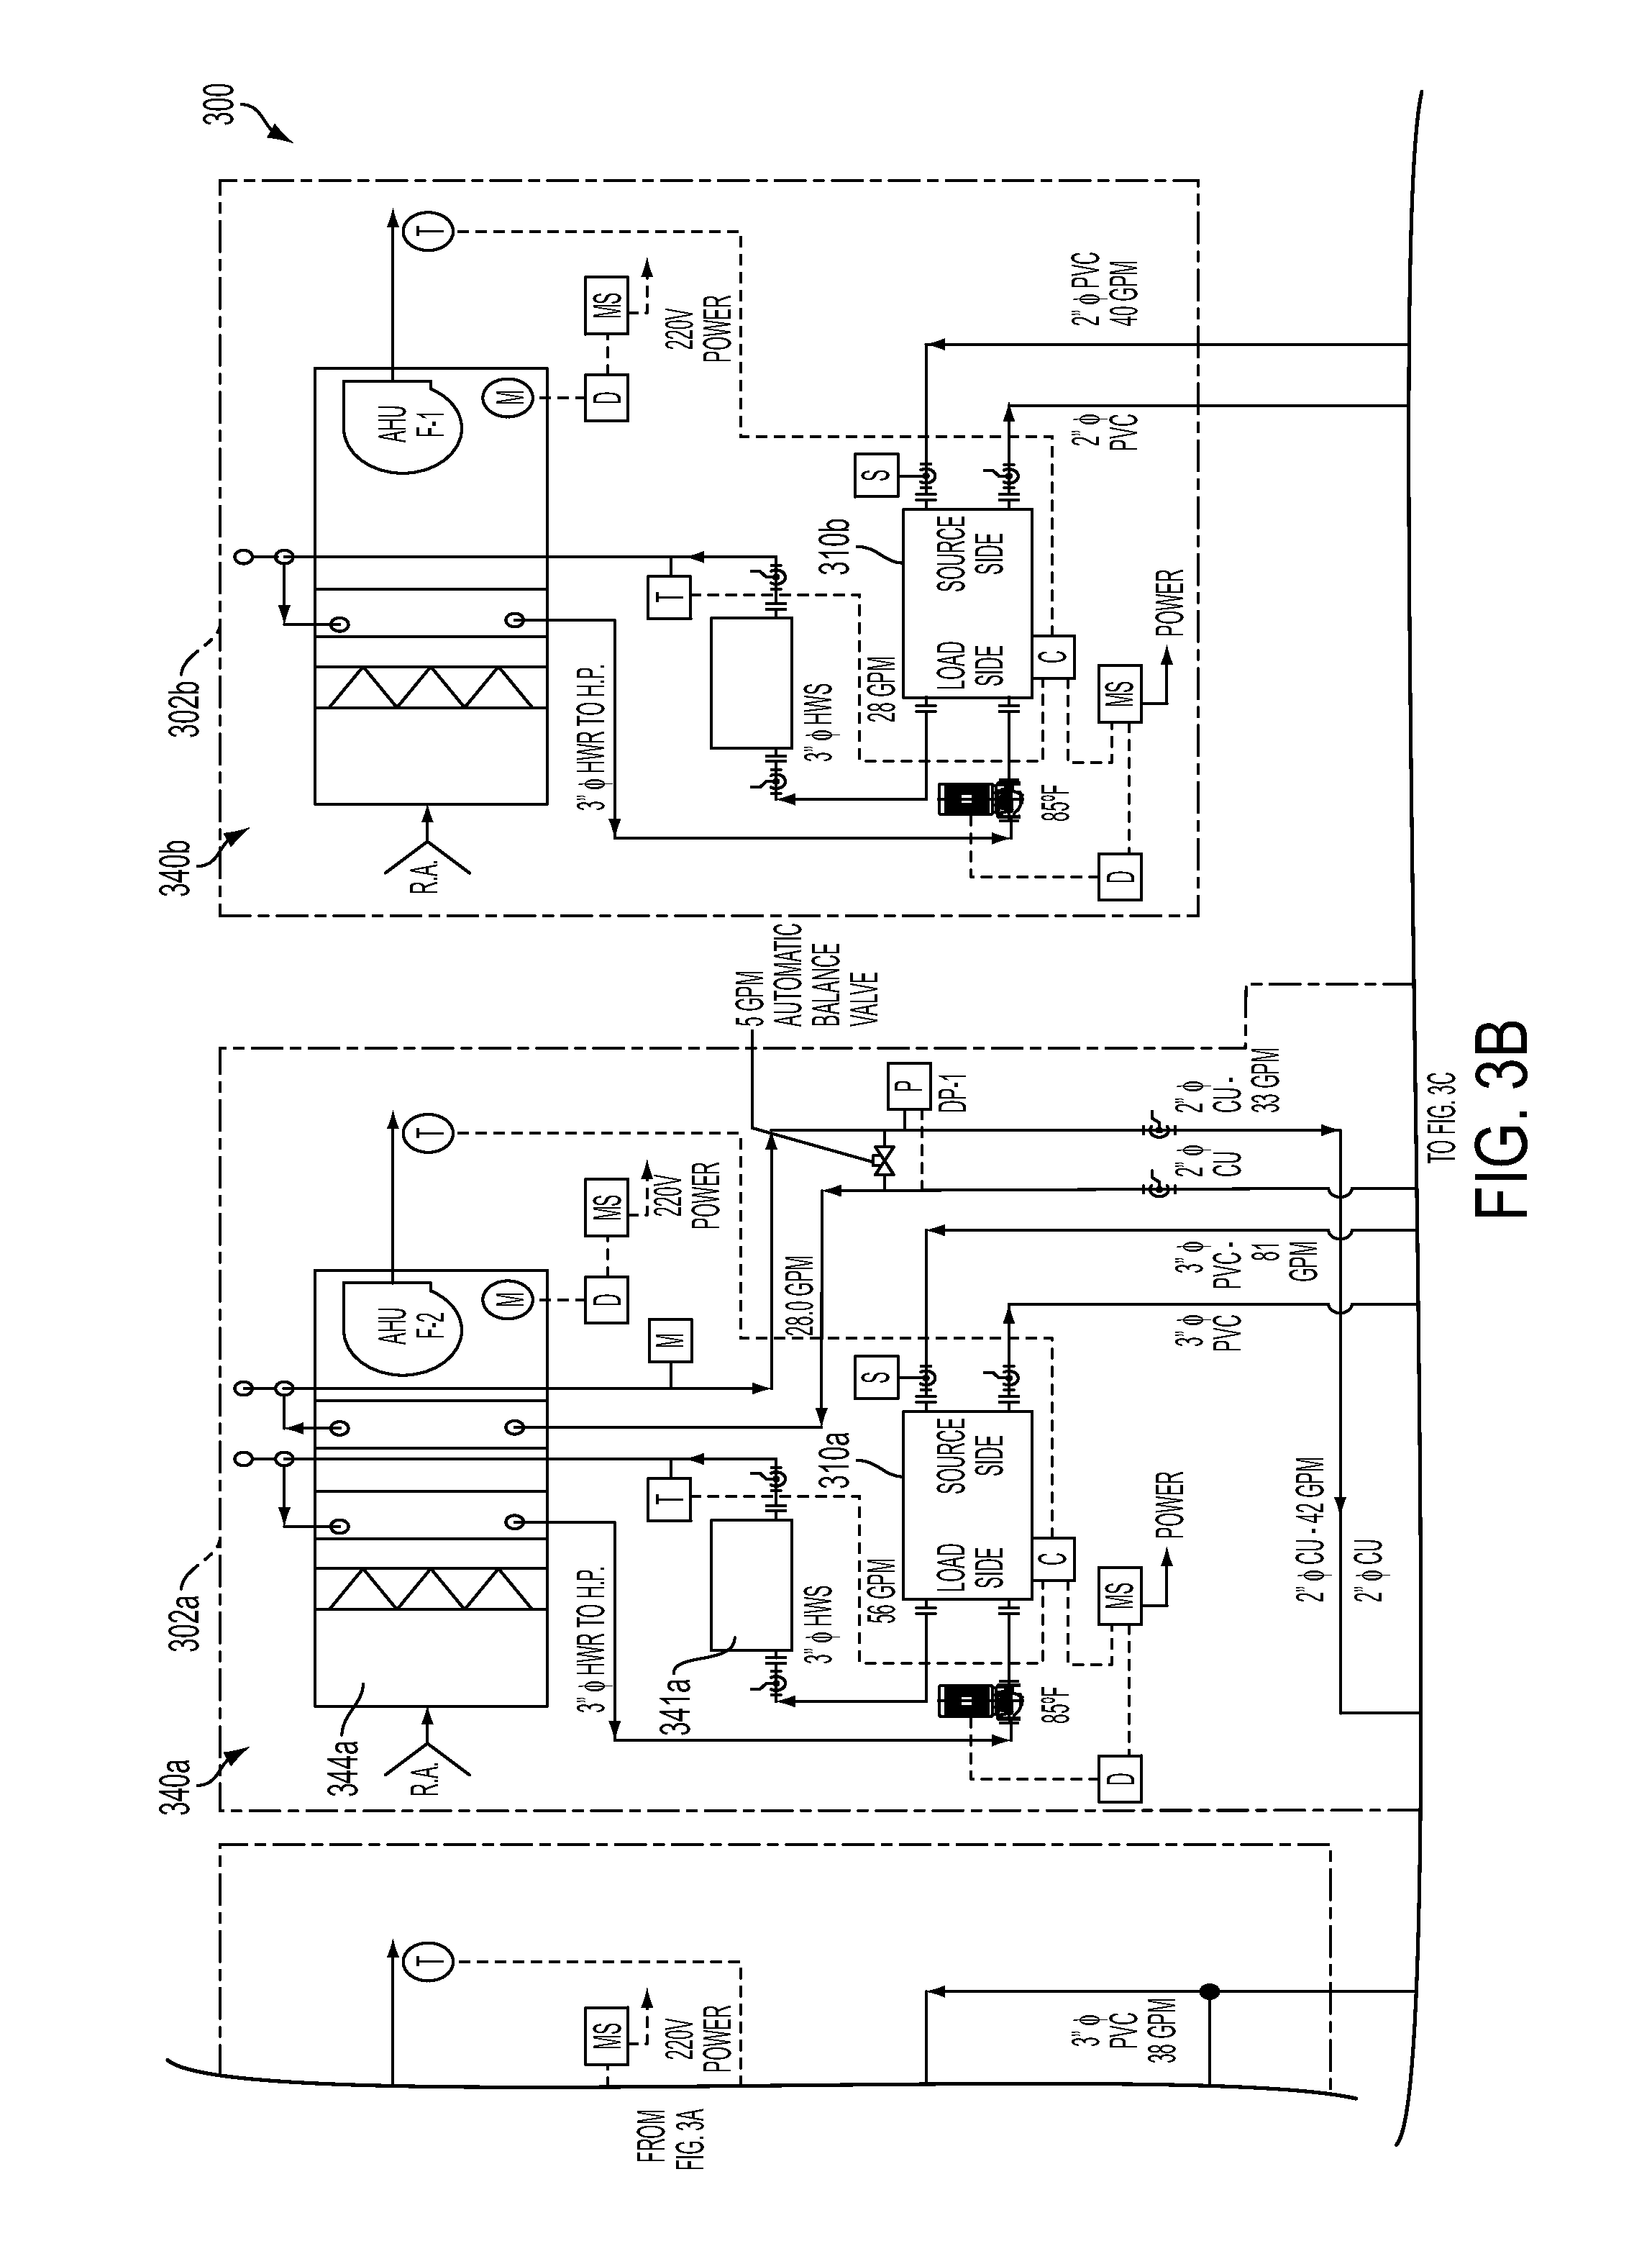 heating andor cooling system google on baseboard water heating system #2D2D2D